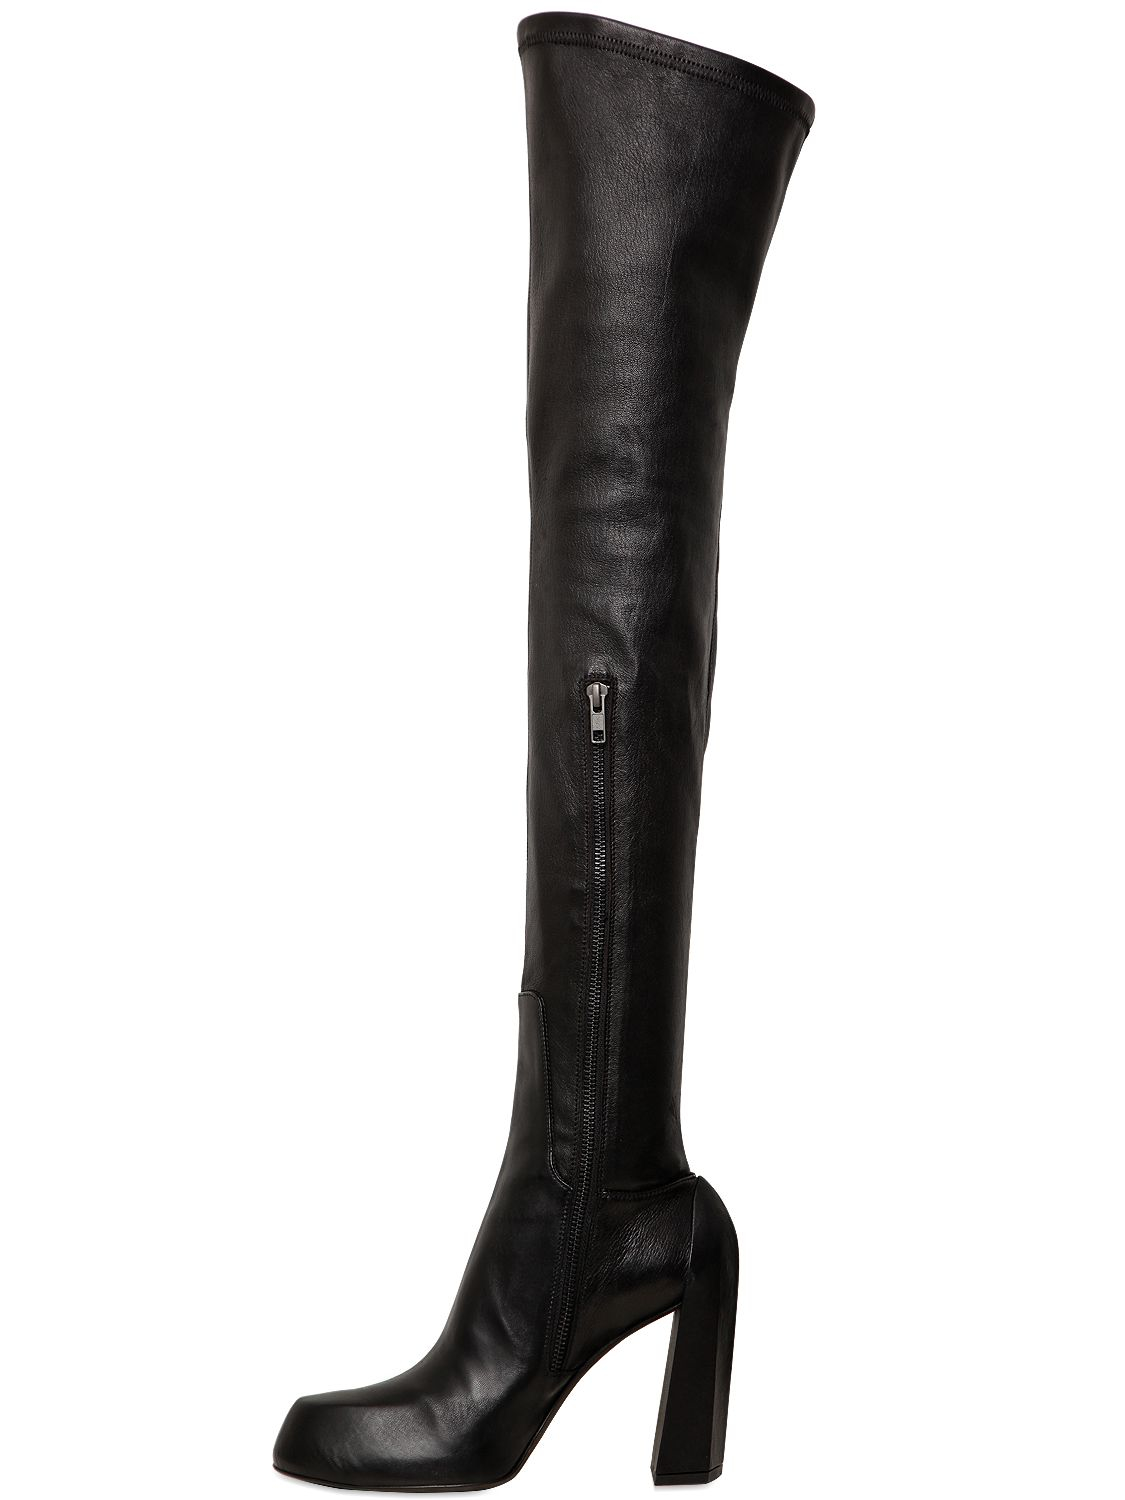 Ann Demeulemeester Ombré Over-The-Knee Boots store outlet lowest price fiRT2lzq